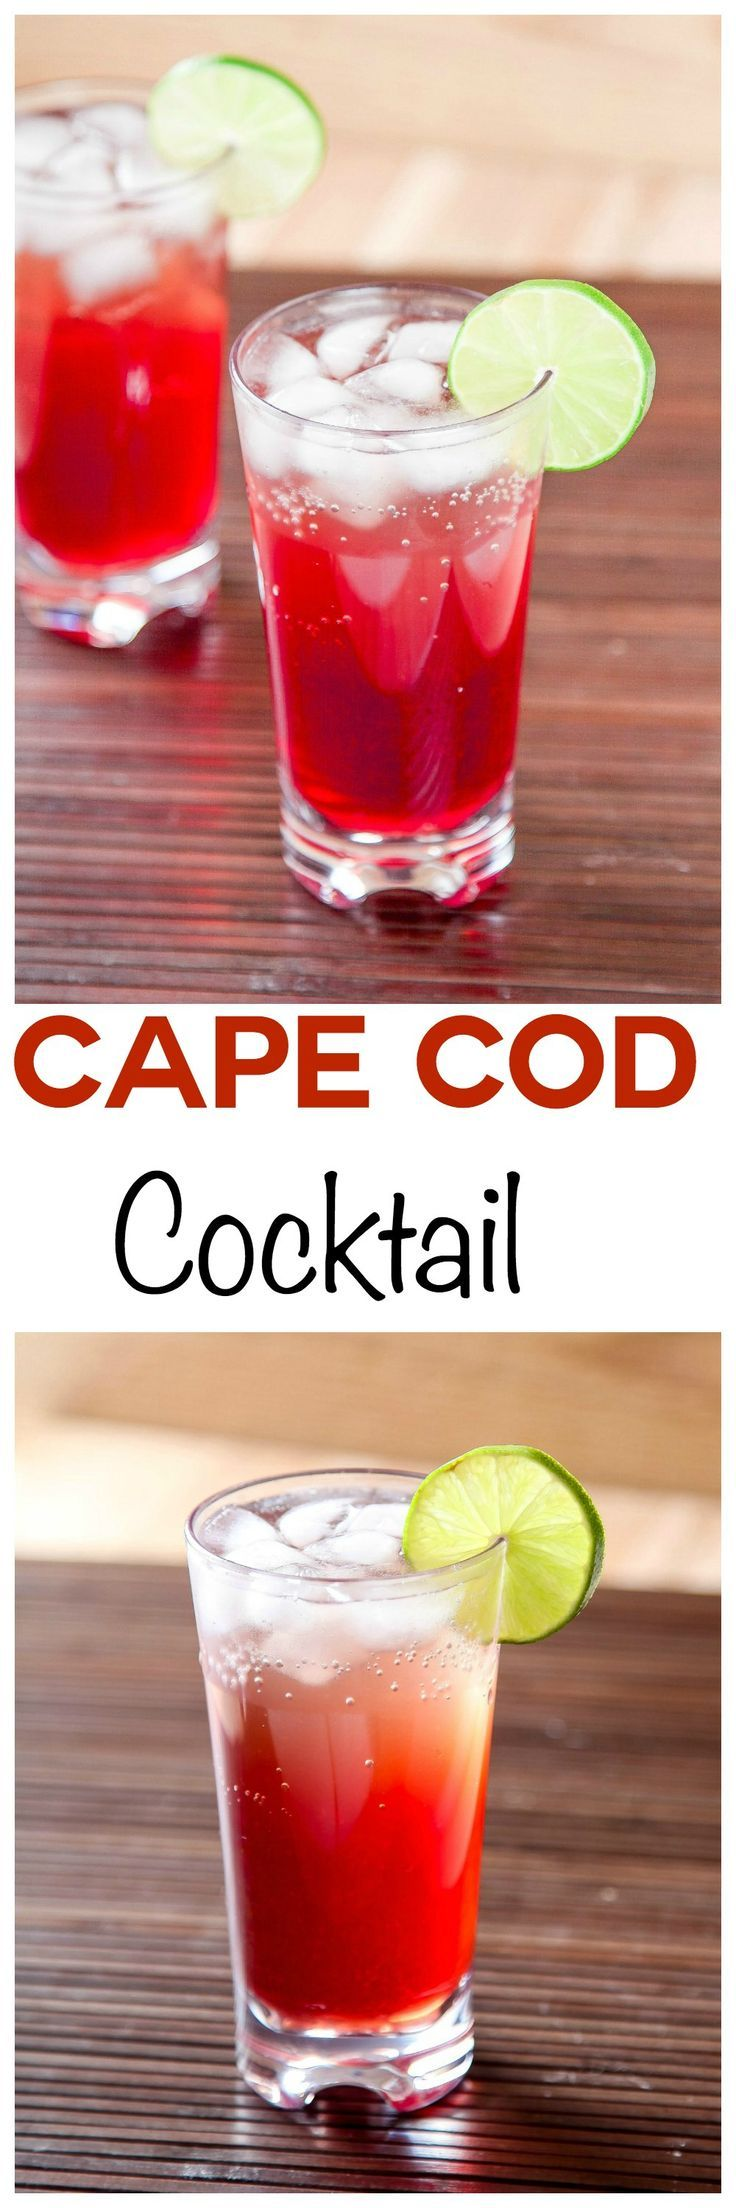 19 best images about cool to drink on pinterest for Best alcohol to mix with cranberry juice